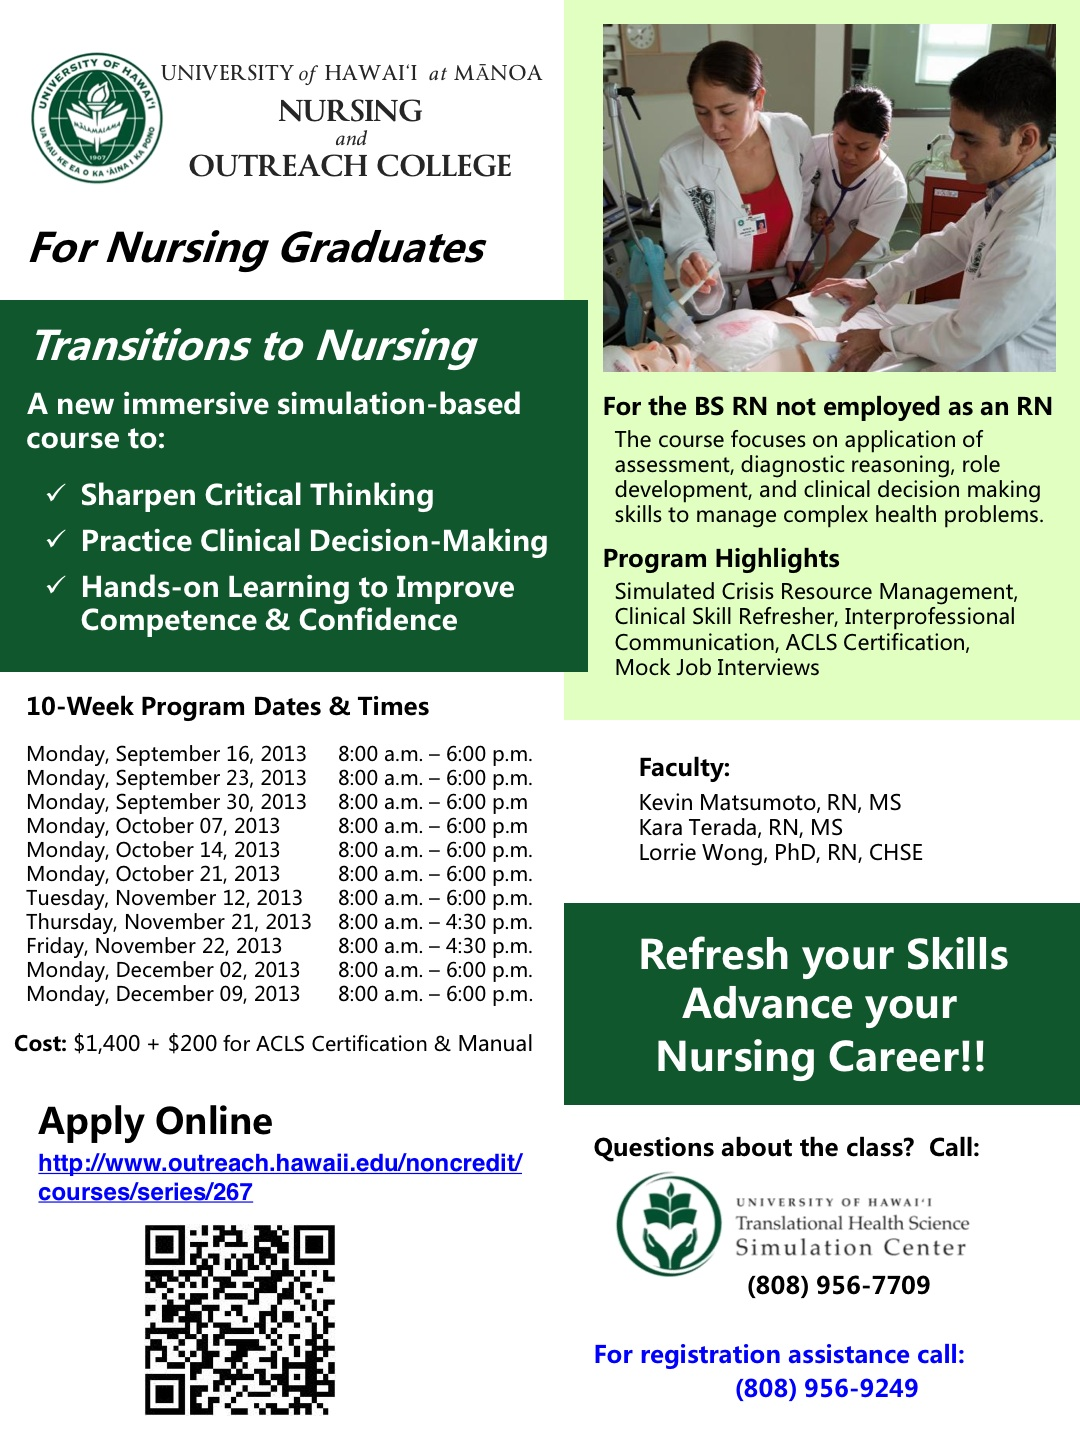 University of Hawaii Translational Health Science Simulation Center flyer